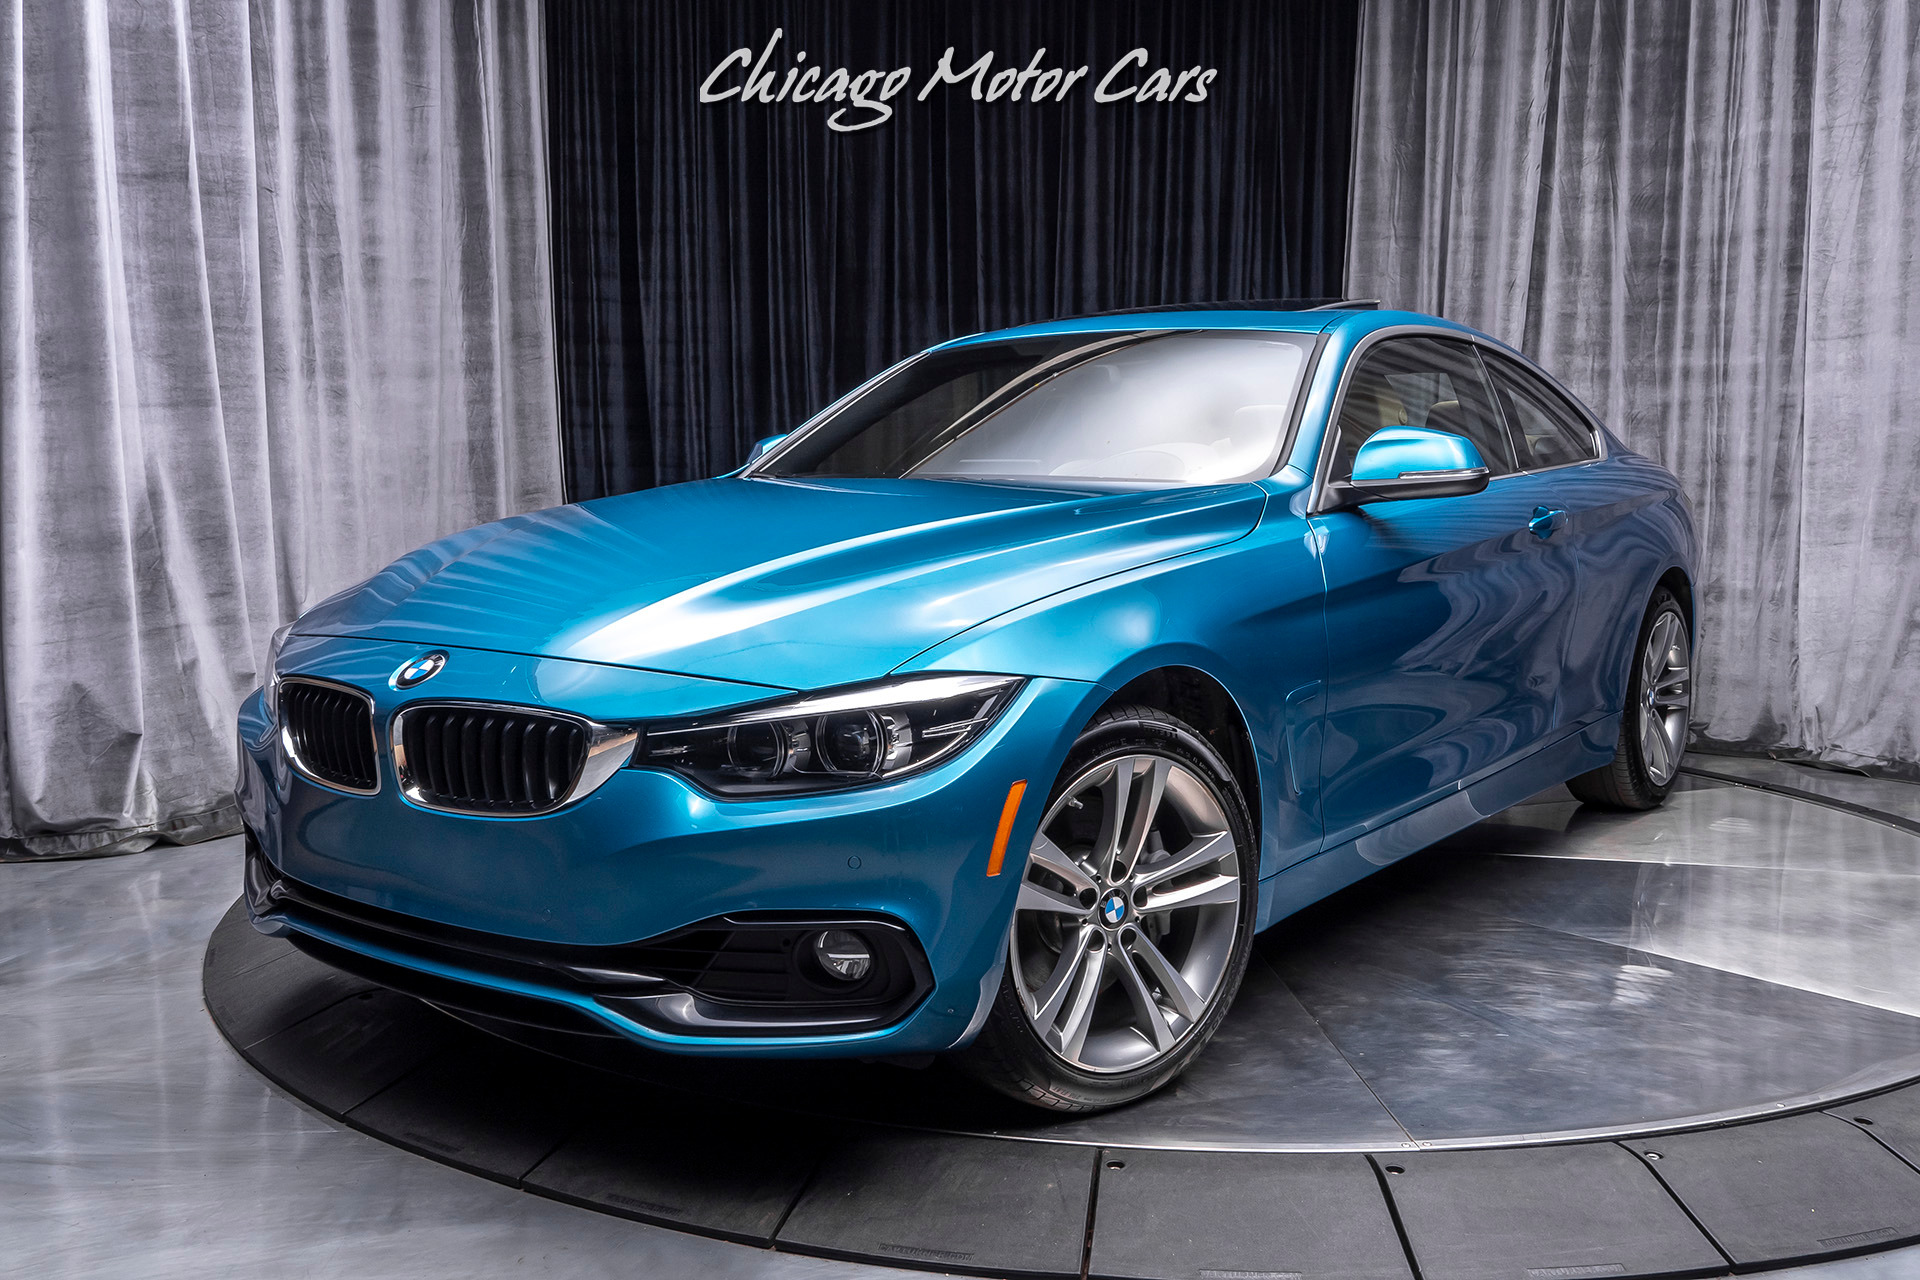 Used 2019 BMW 440i xDrive Coupe MSRP $56K+ For Sale ($38,800